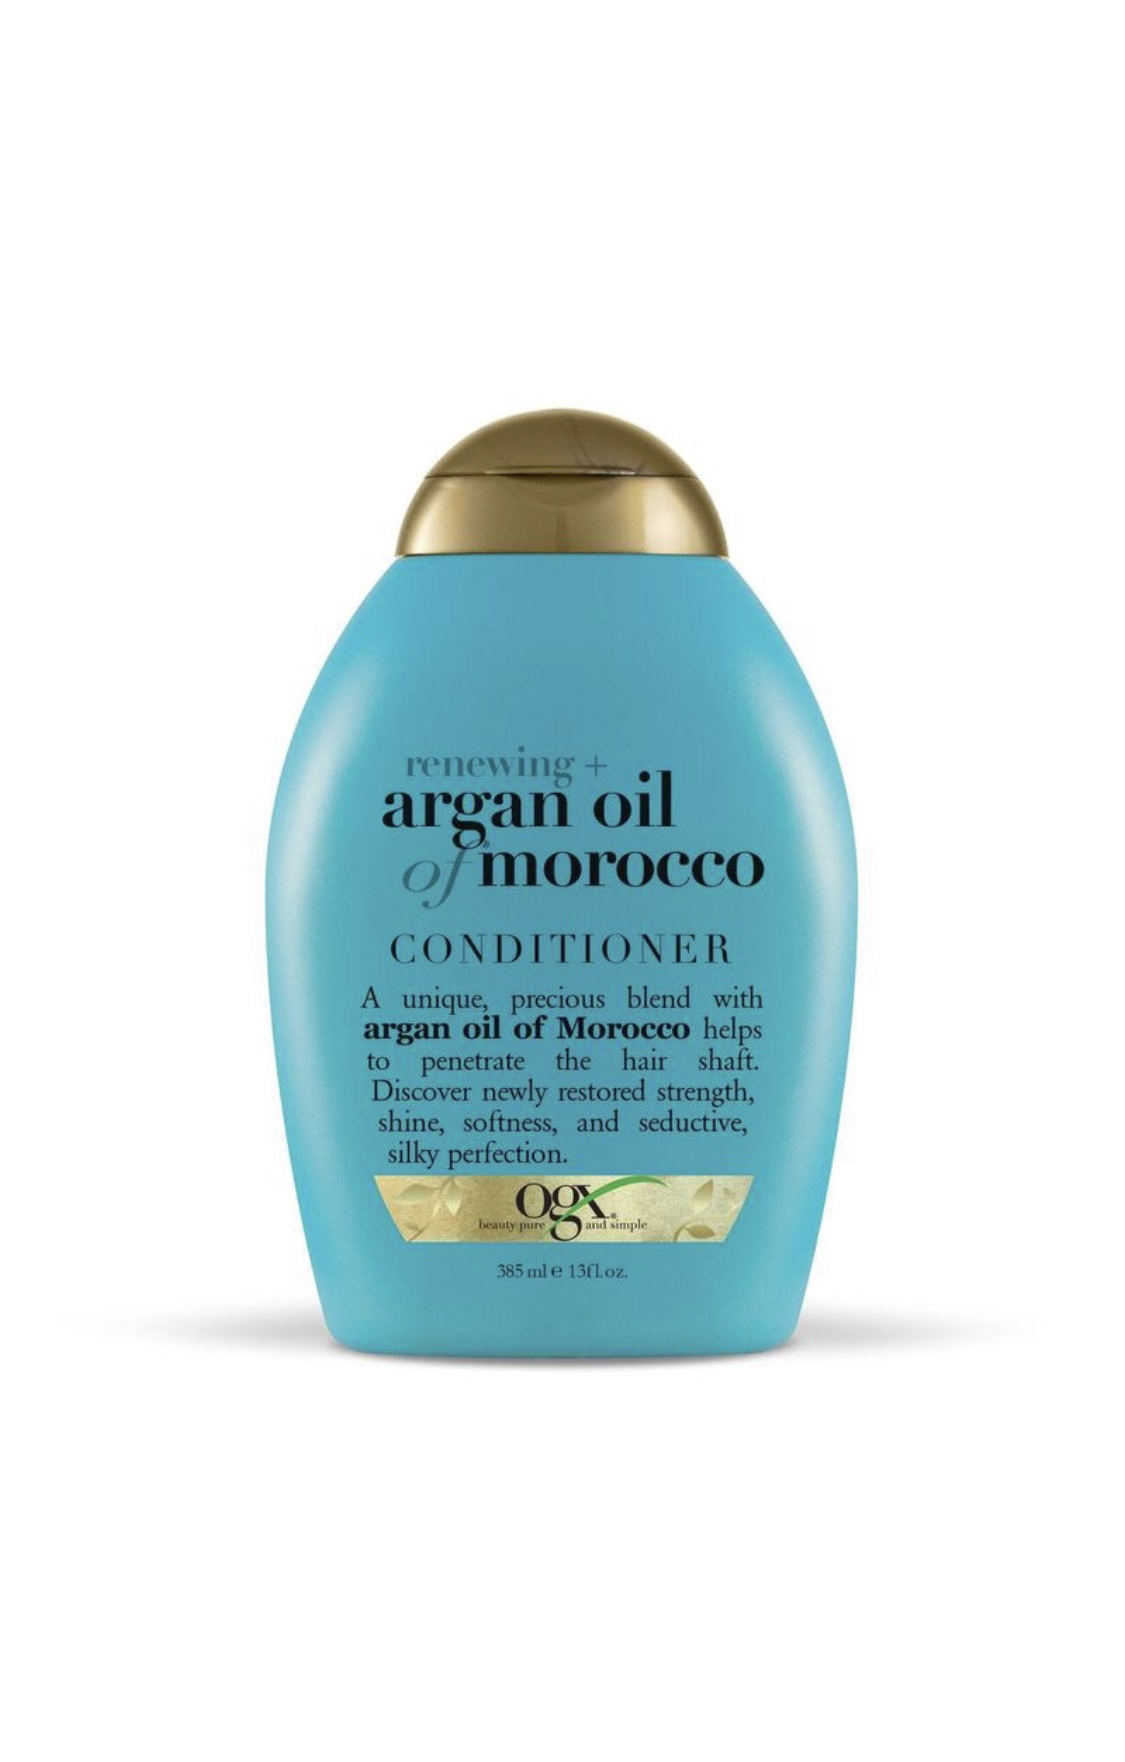 OGX Renewing + Argan Oil of Morocco Conditioner Review -Amazing results-By dimps7